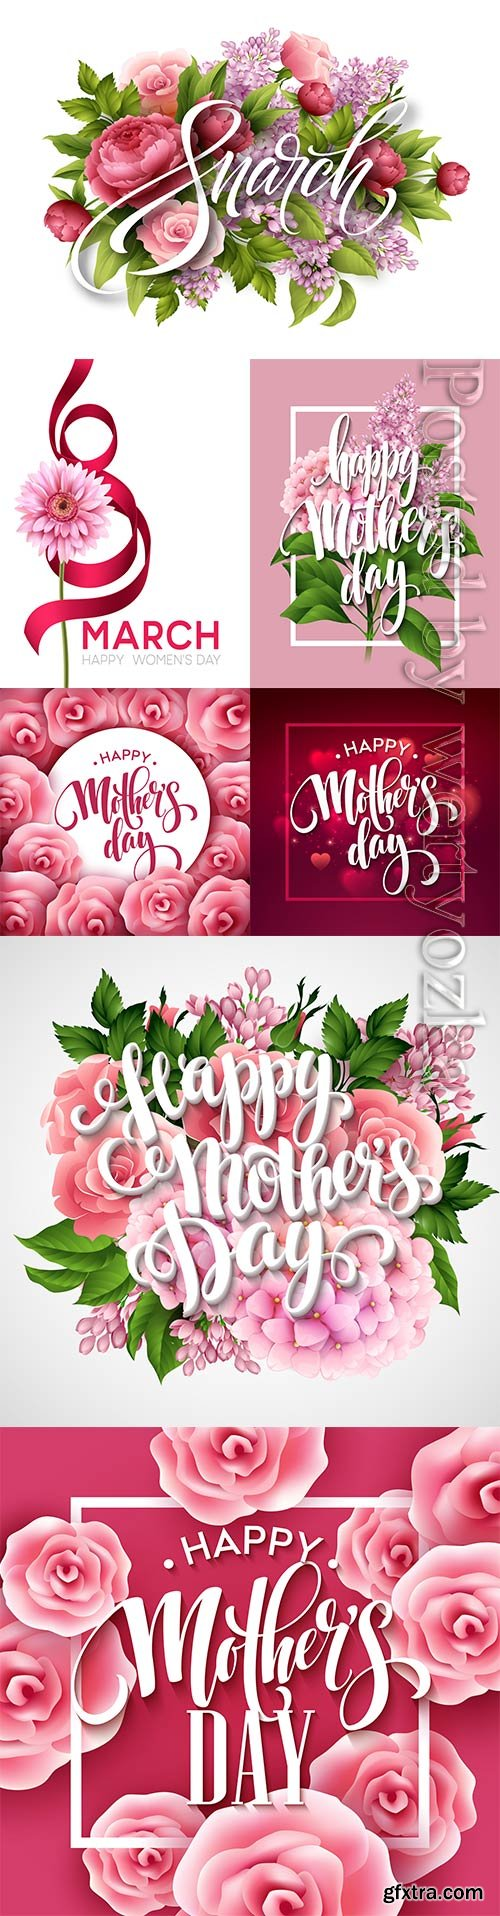 Happy mothers day lettering, greeting card with flowers